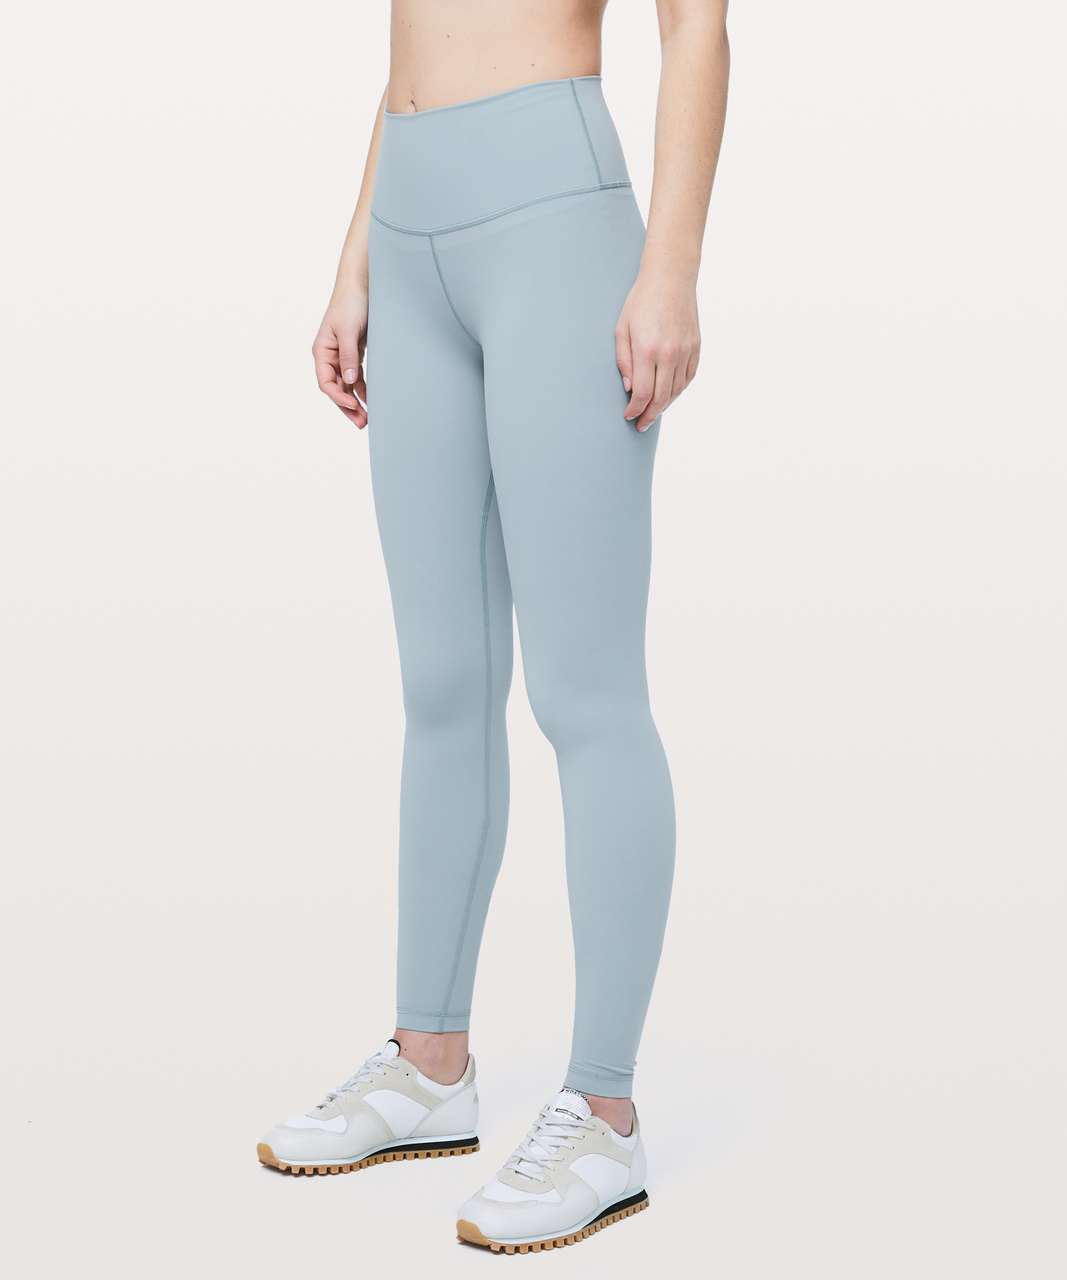 "Lululemon Wunder Under High-Rise Tight *Full-On Luxtreme Tall 31"" - Blue Cast"